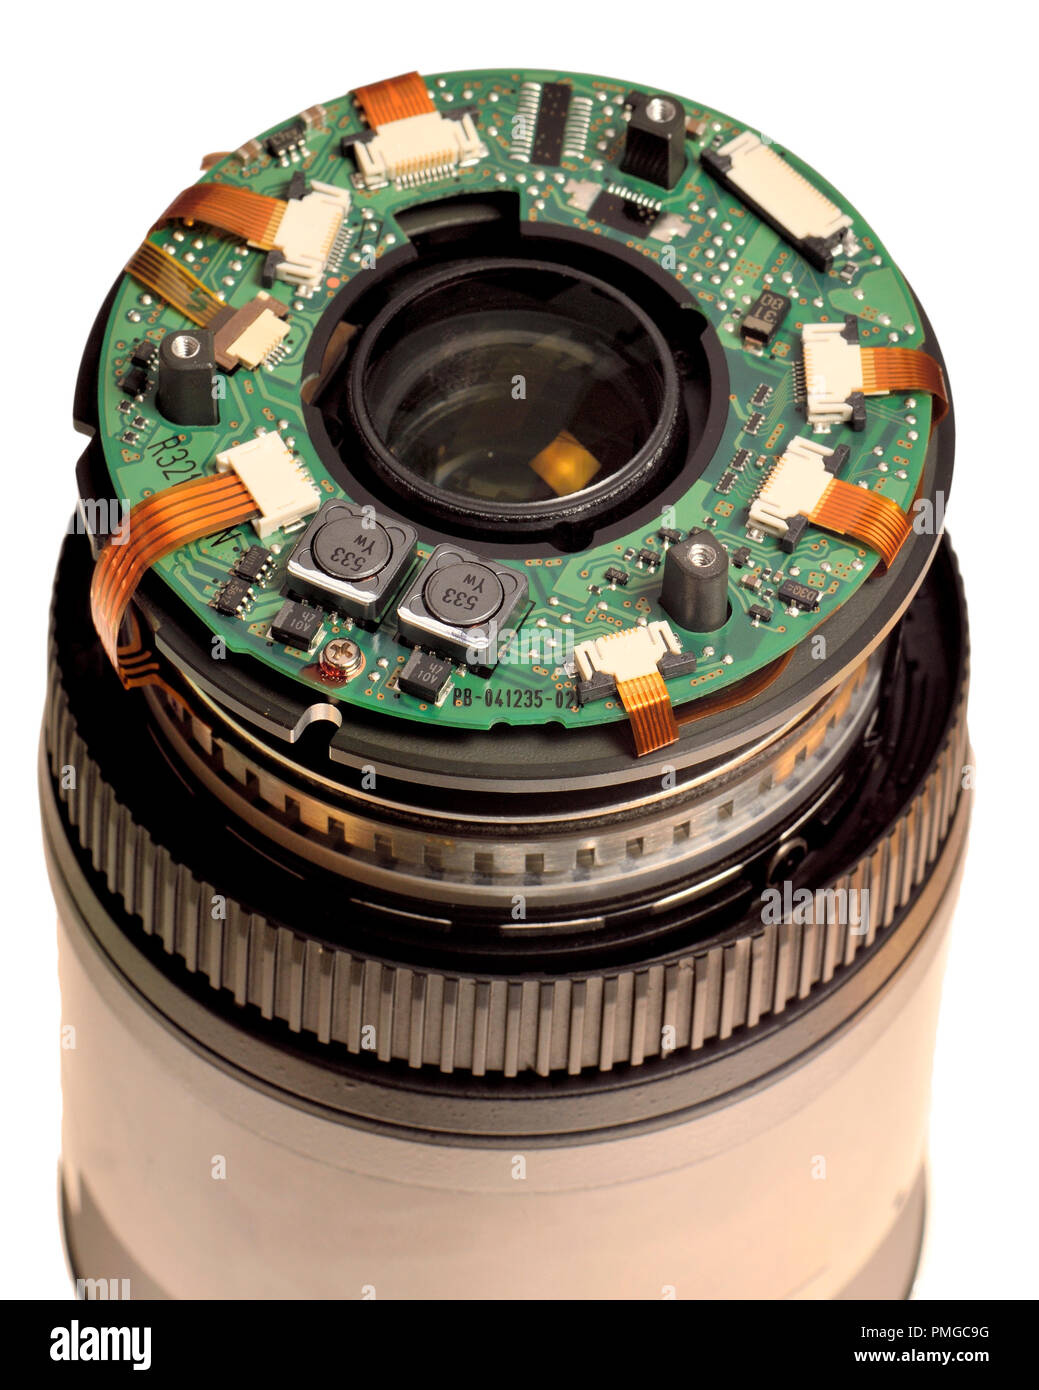 Inside a photographic lens - part of the electronics and rear element of a Nikon 70-300 lens - Stock Image